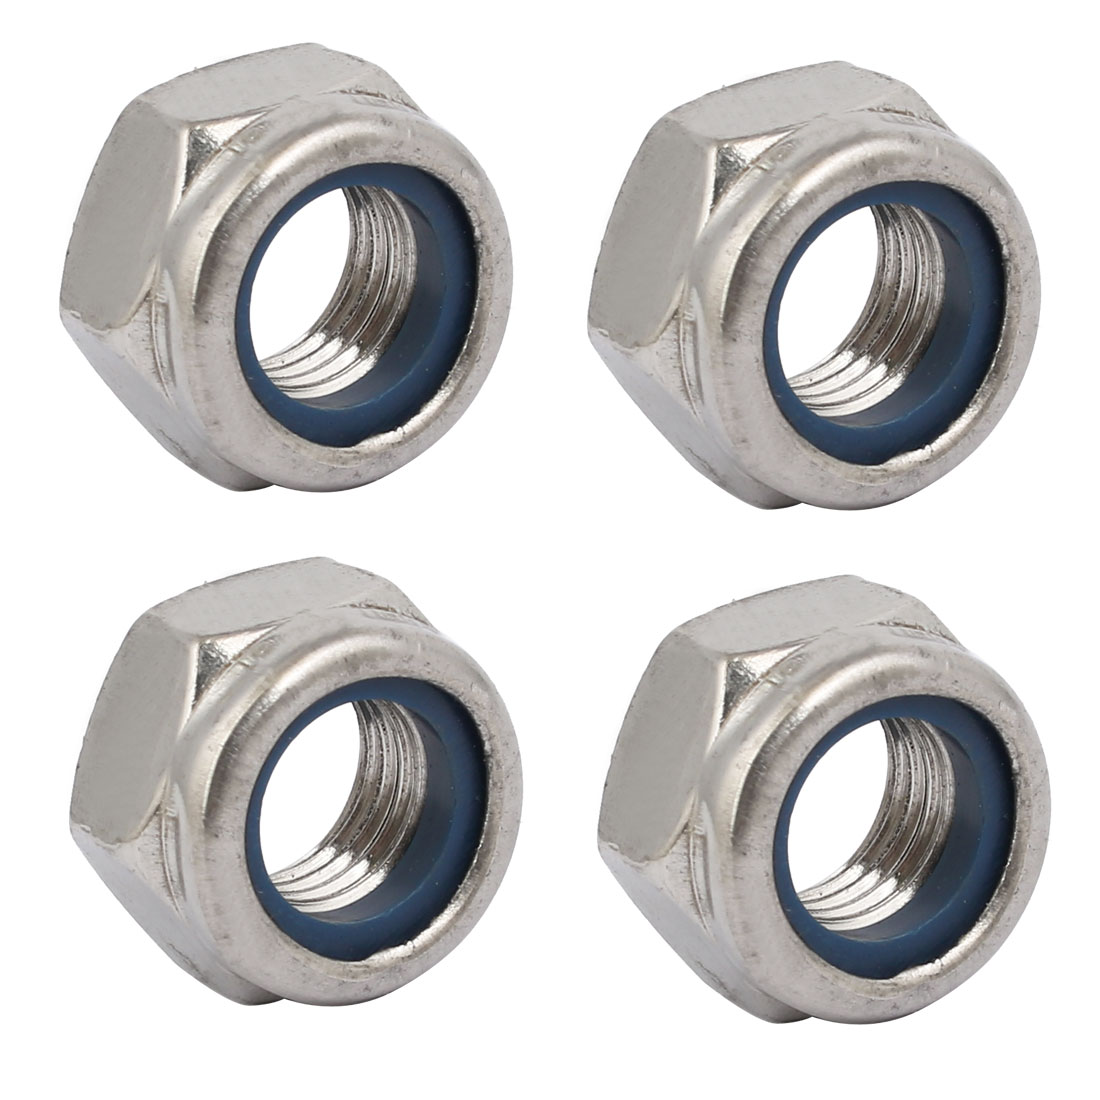 8pcs M12 x 1.5mm Pitch Metric Fine Thread 304 Stainless Steel Hex Lock Nuts